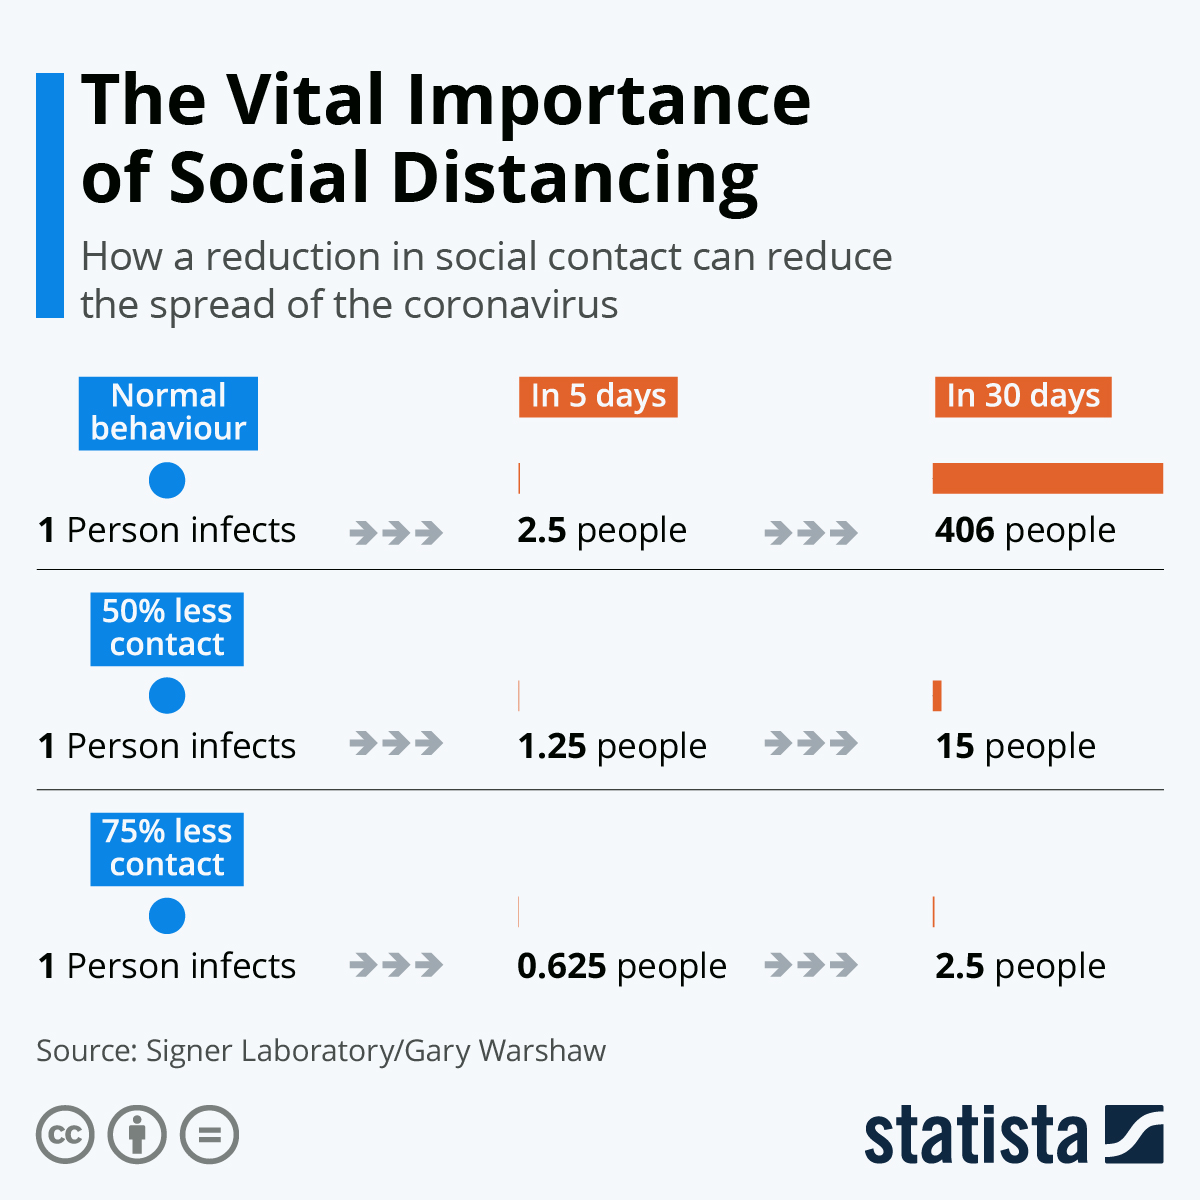 Social Distancing to reduce spread of Coronavirus Covid-19 Statista infographic March 23 2020